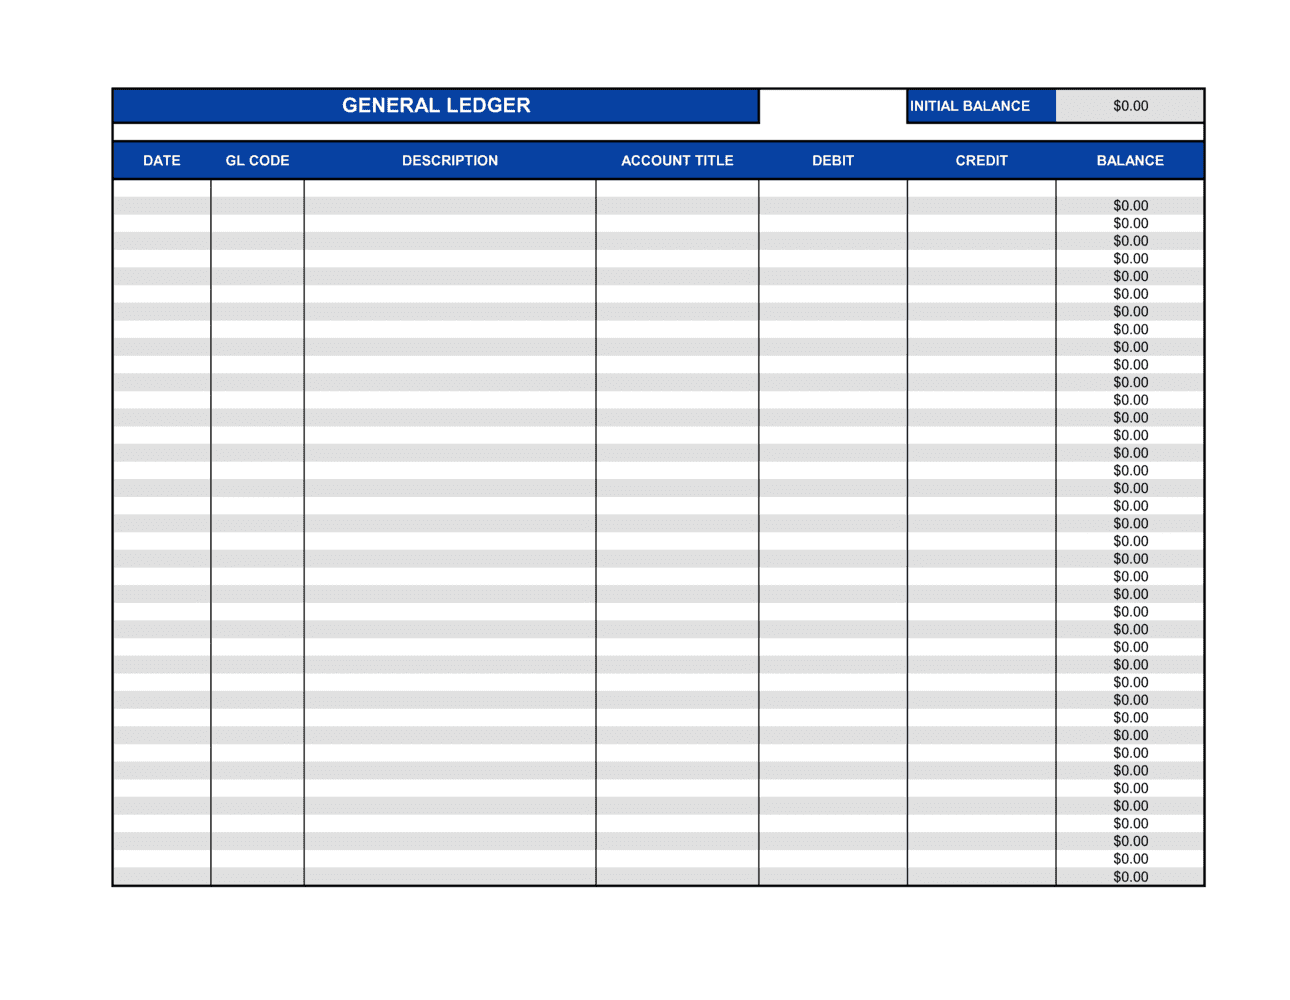 Business-in-a-Box's General Ledger Template